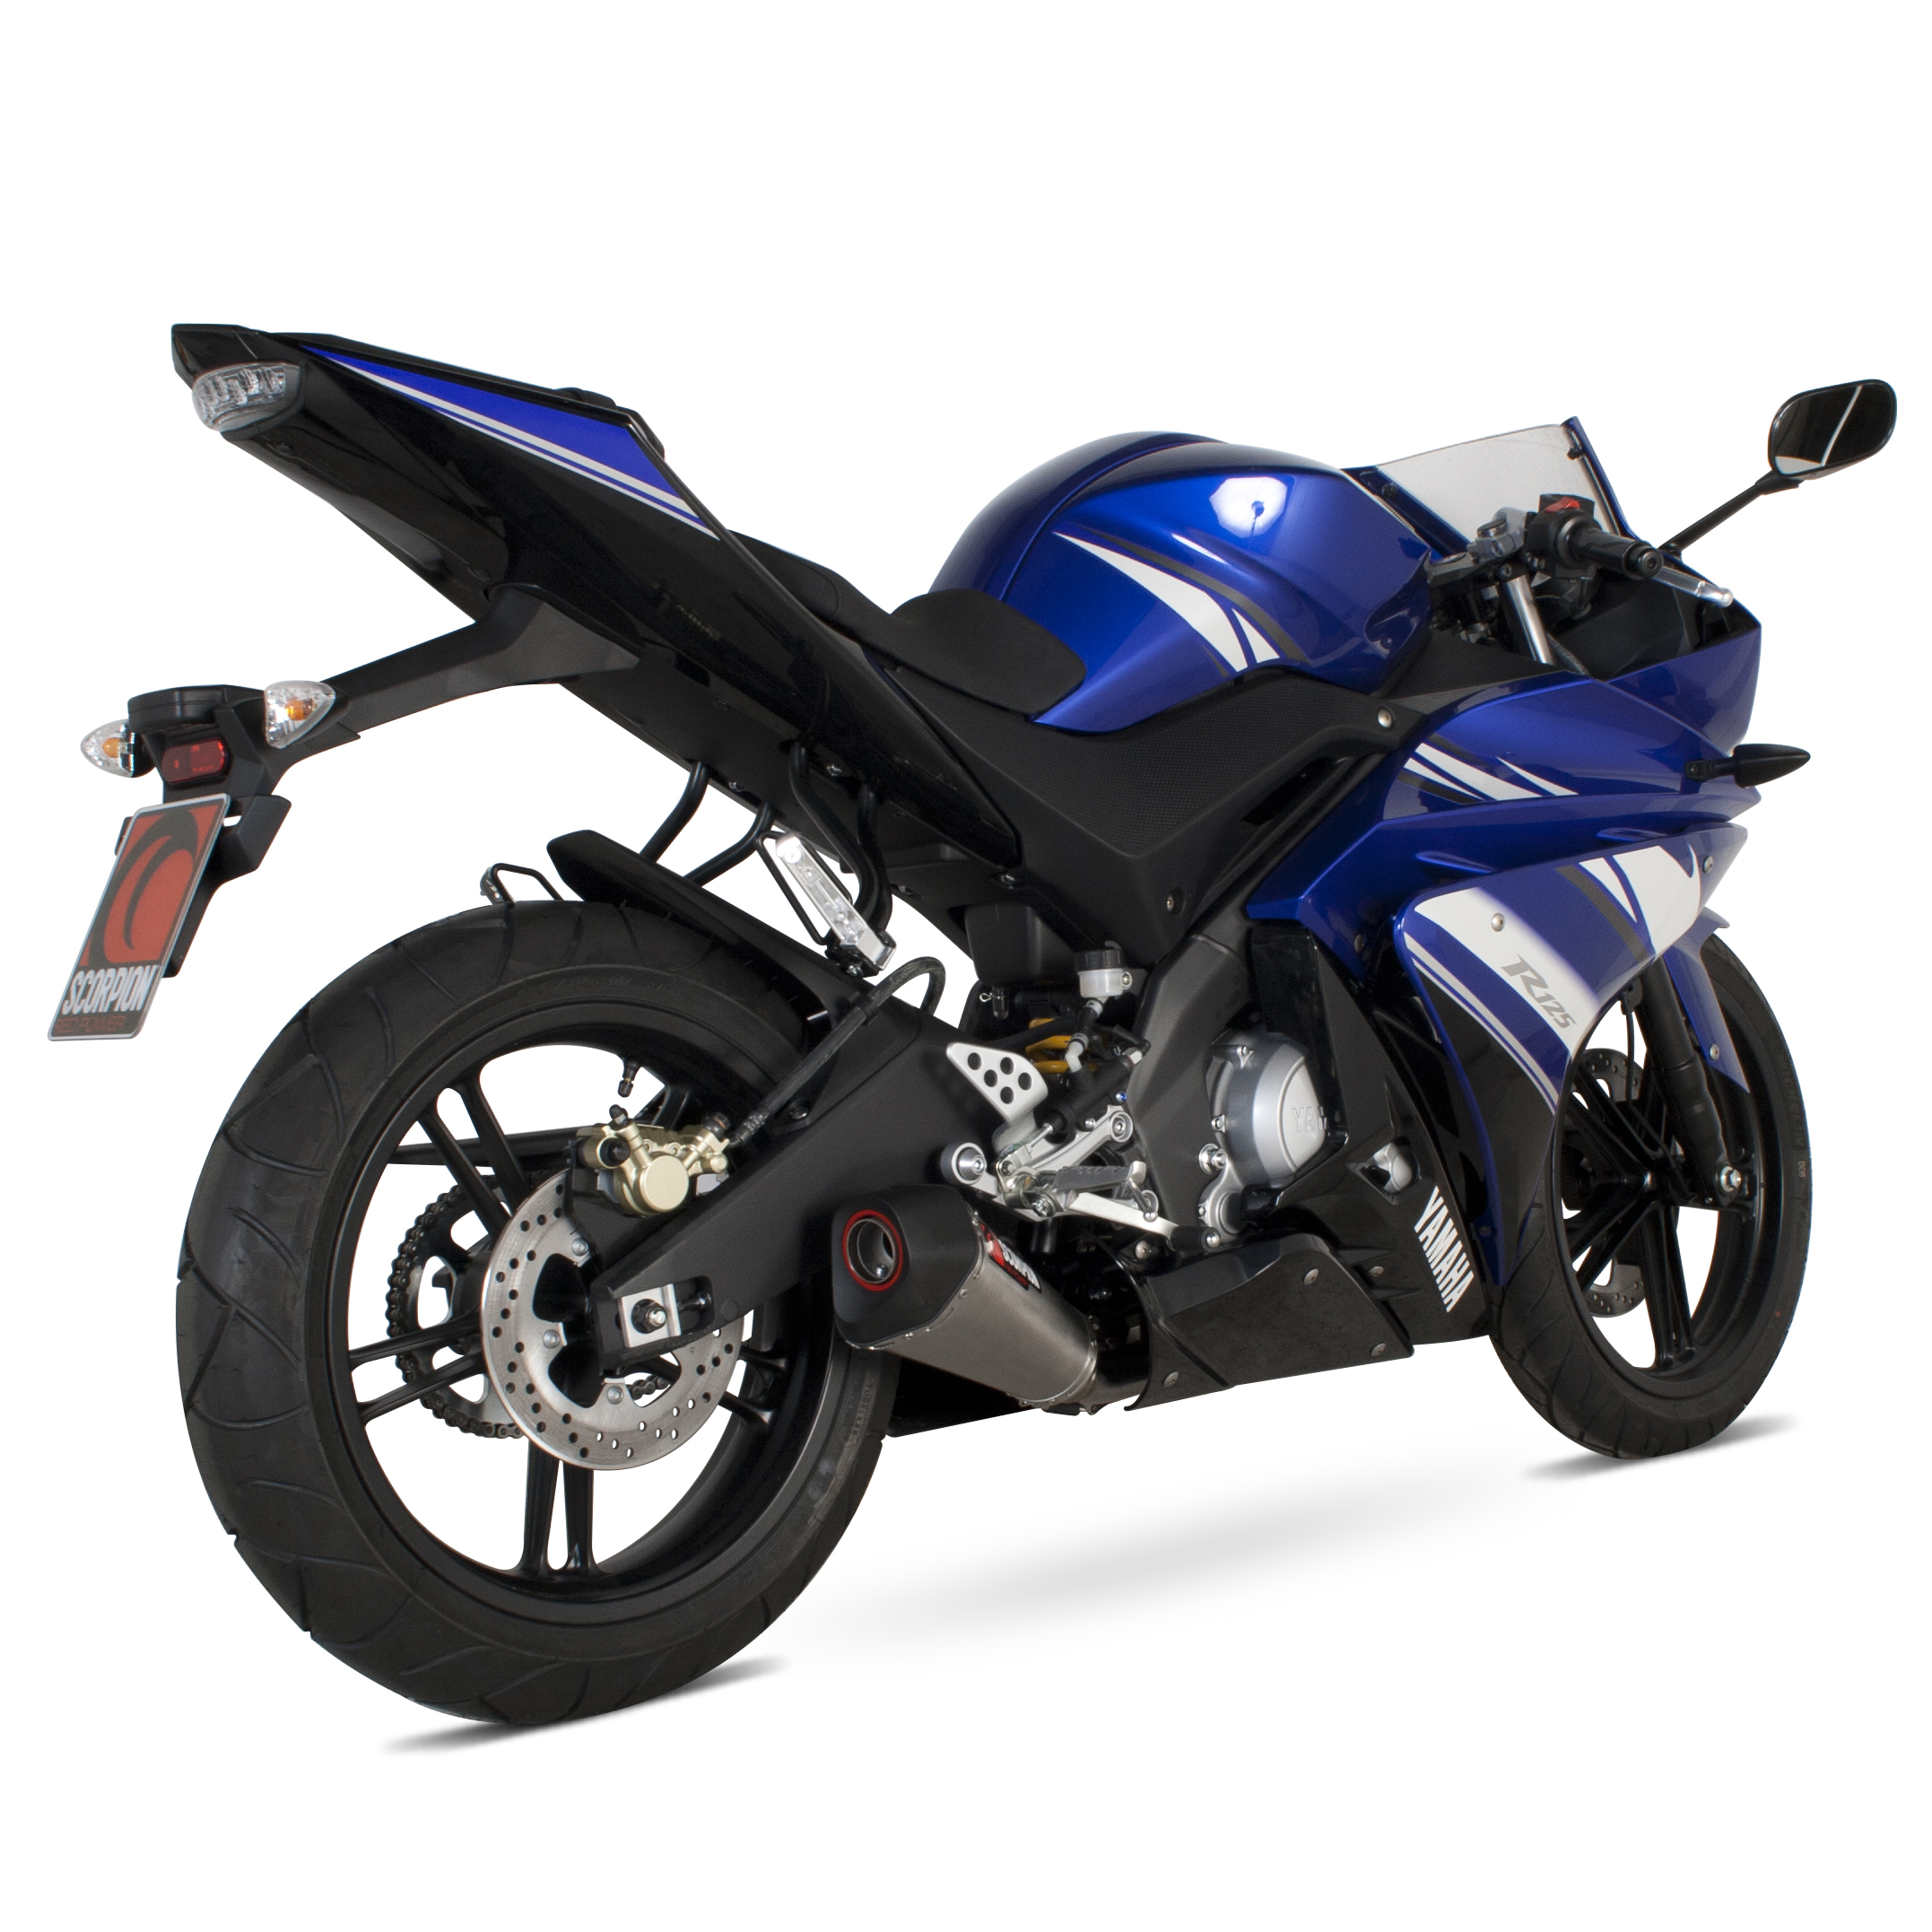 yamaha yzf r 125 system 12 current scorpion serket taper titanium oval exhaust ebay. Black Bedroom Furniture Sets. Home Design Ideas